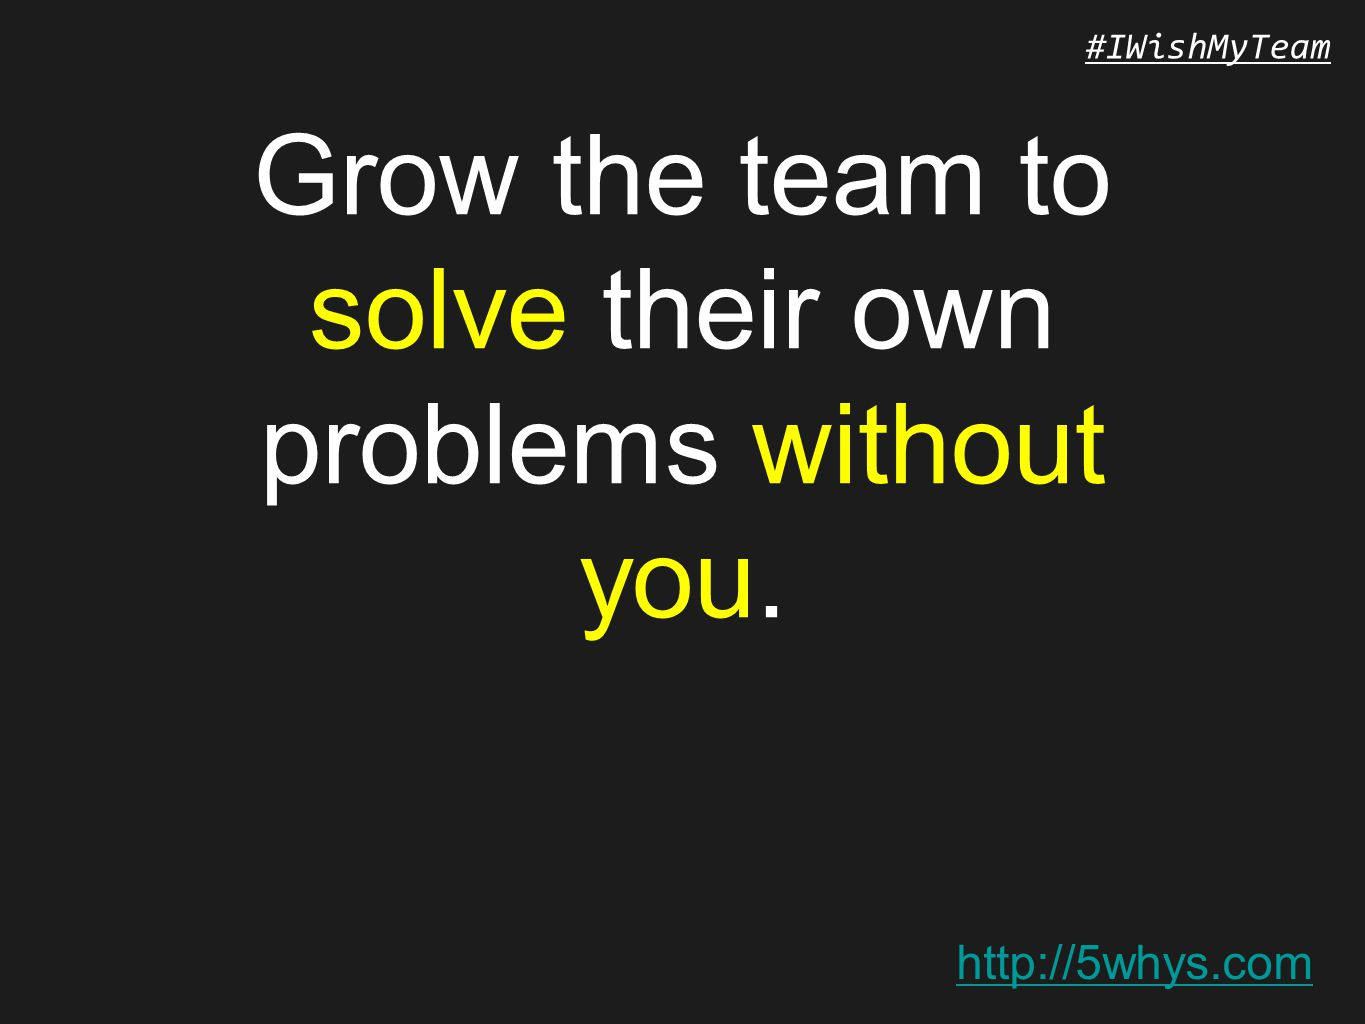 http://5whys.com #IWishMyTeam Grow the team to solve their own problems without you.